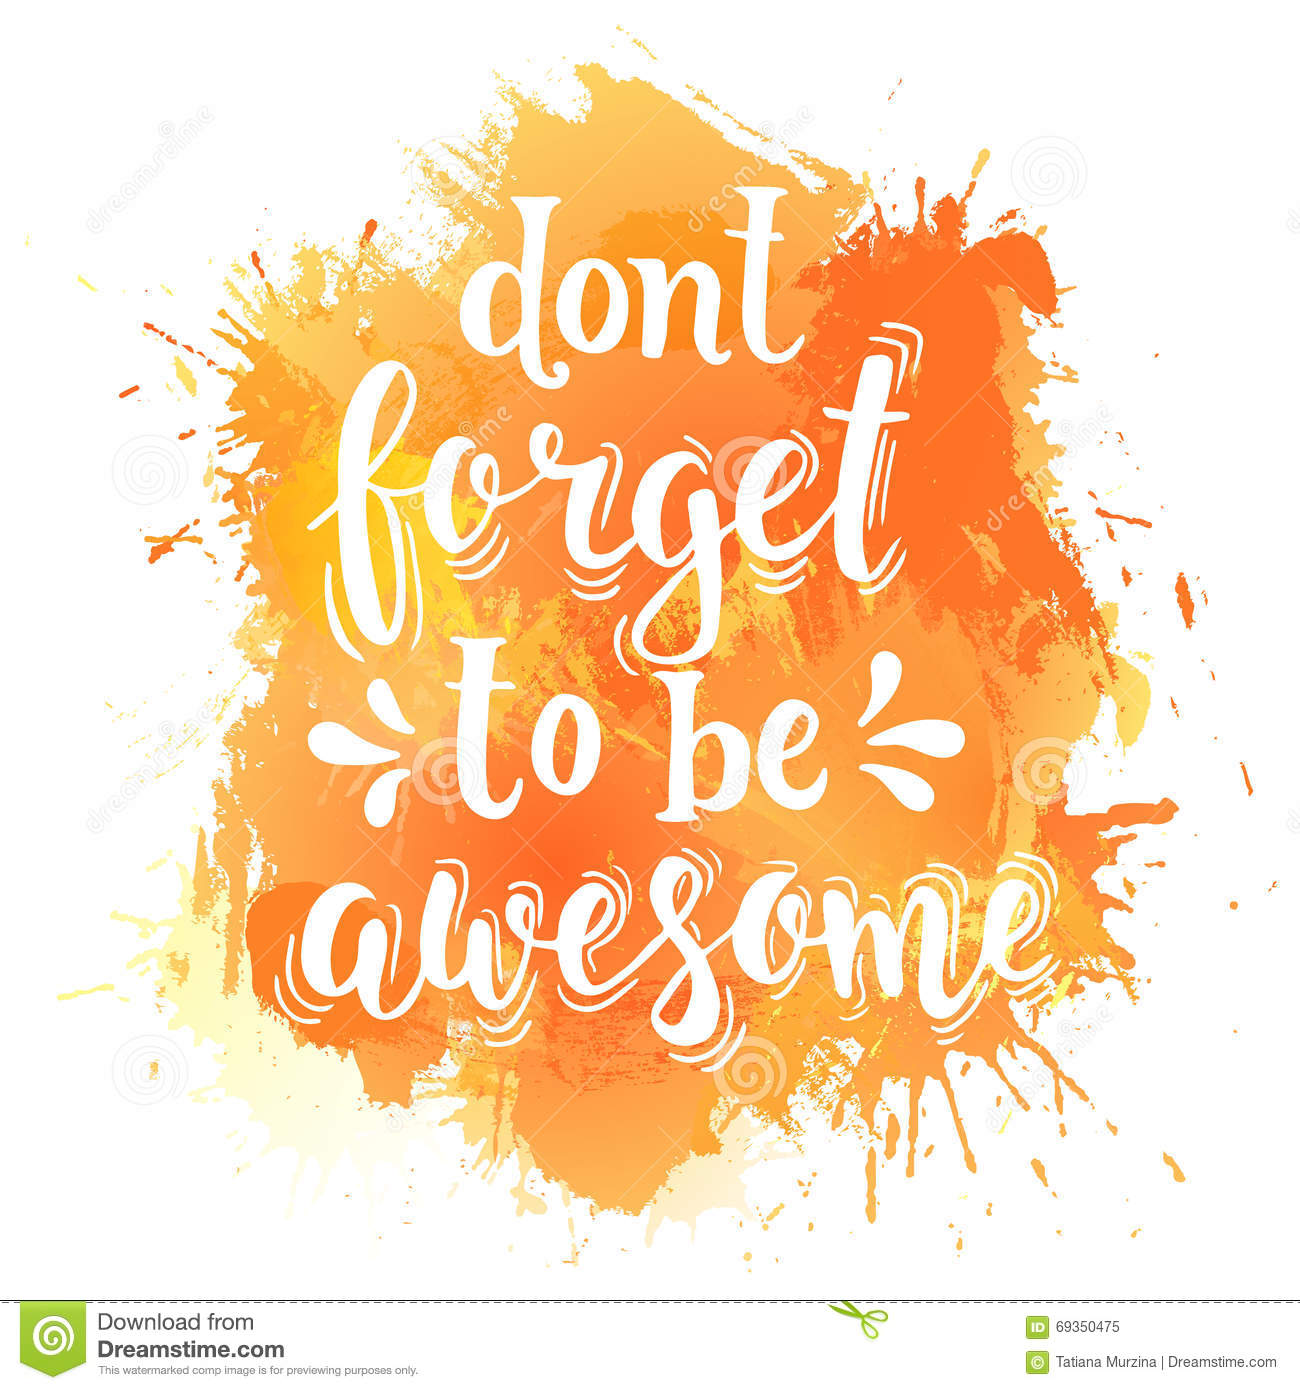 Motivational Quotes About Success: Don't Forget To Be Awesome. Hand Drawn Typography Poster